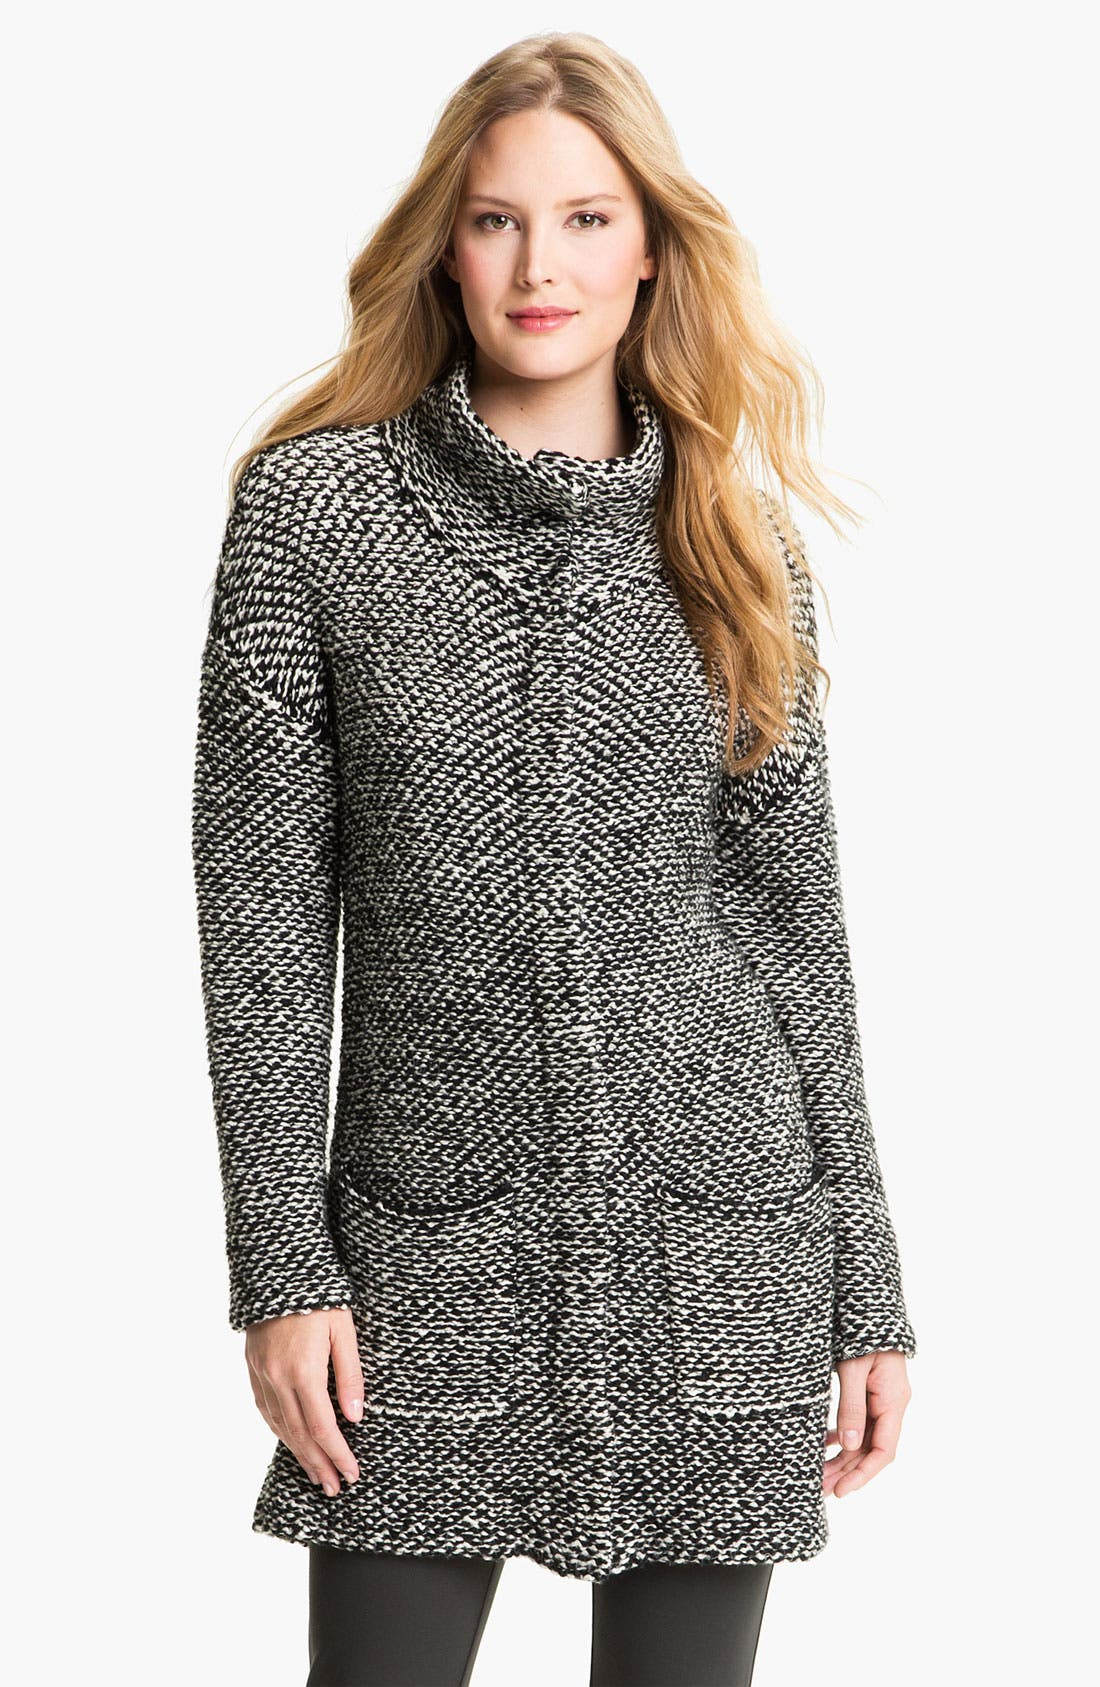 Alternate Image 1 Selected - Eileen Fisher Funnel Collar Twist Jacket (Petite)